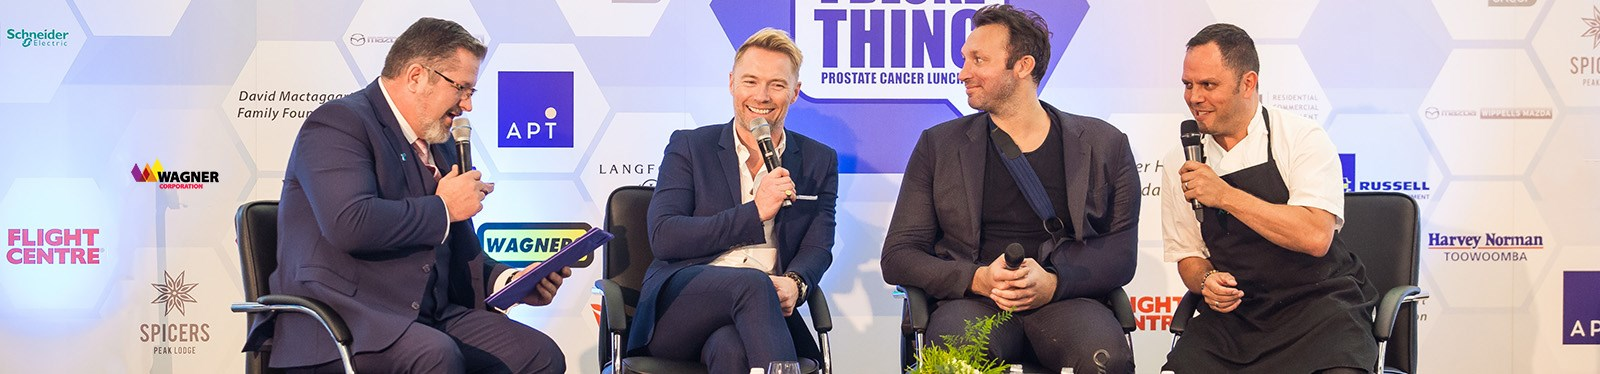 Wagner Corporation_Community Sponsorship_It's A Bloke Thing 2019 with Ronan Keating